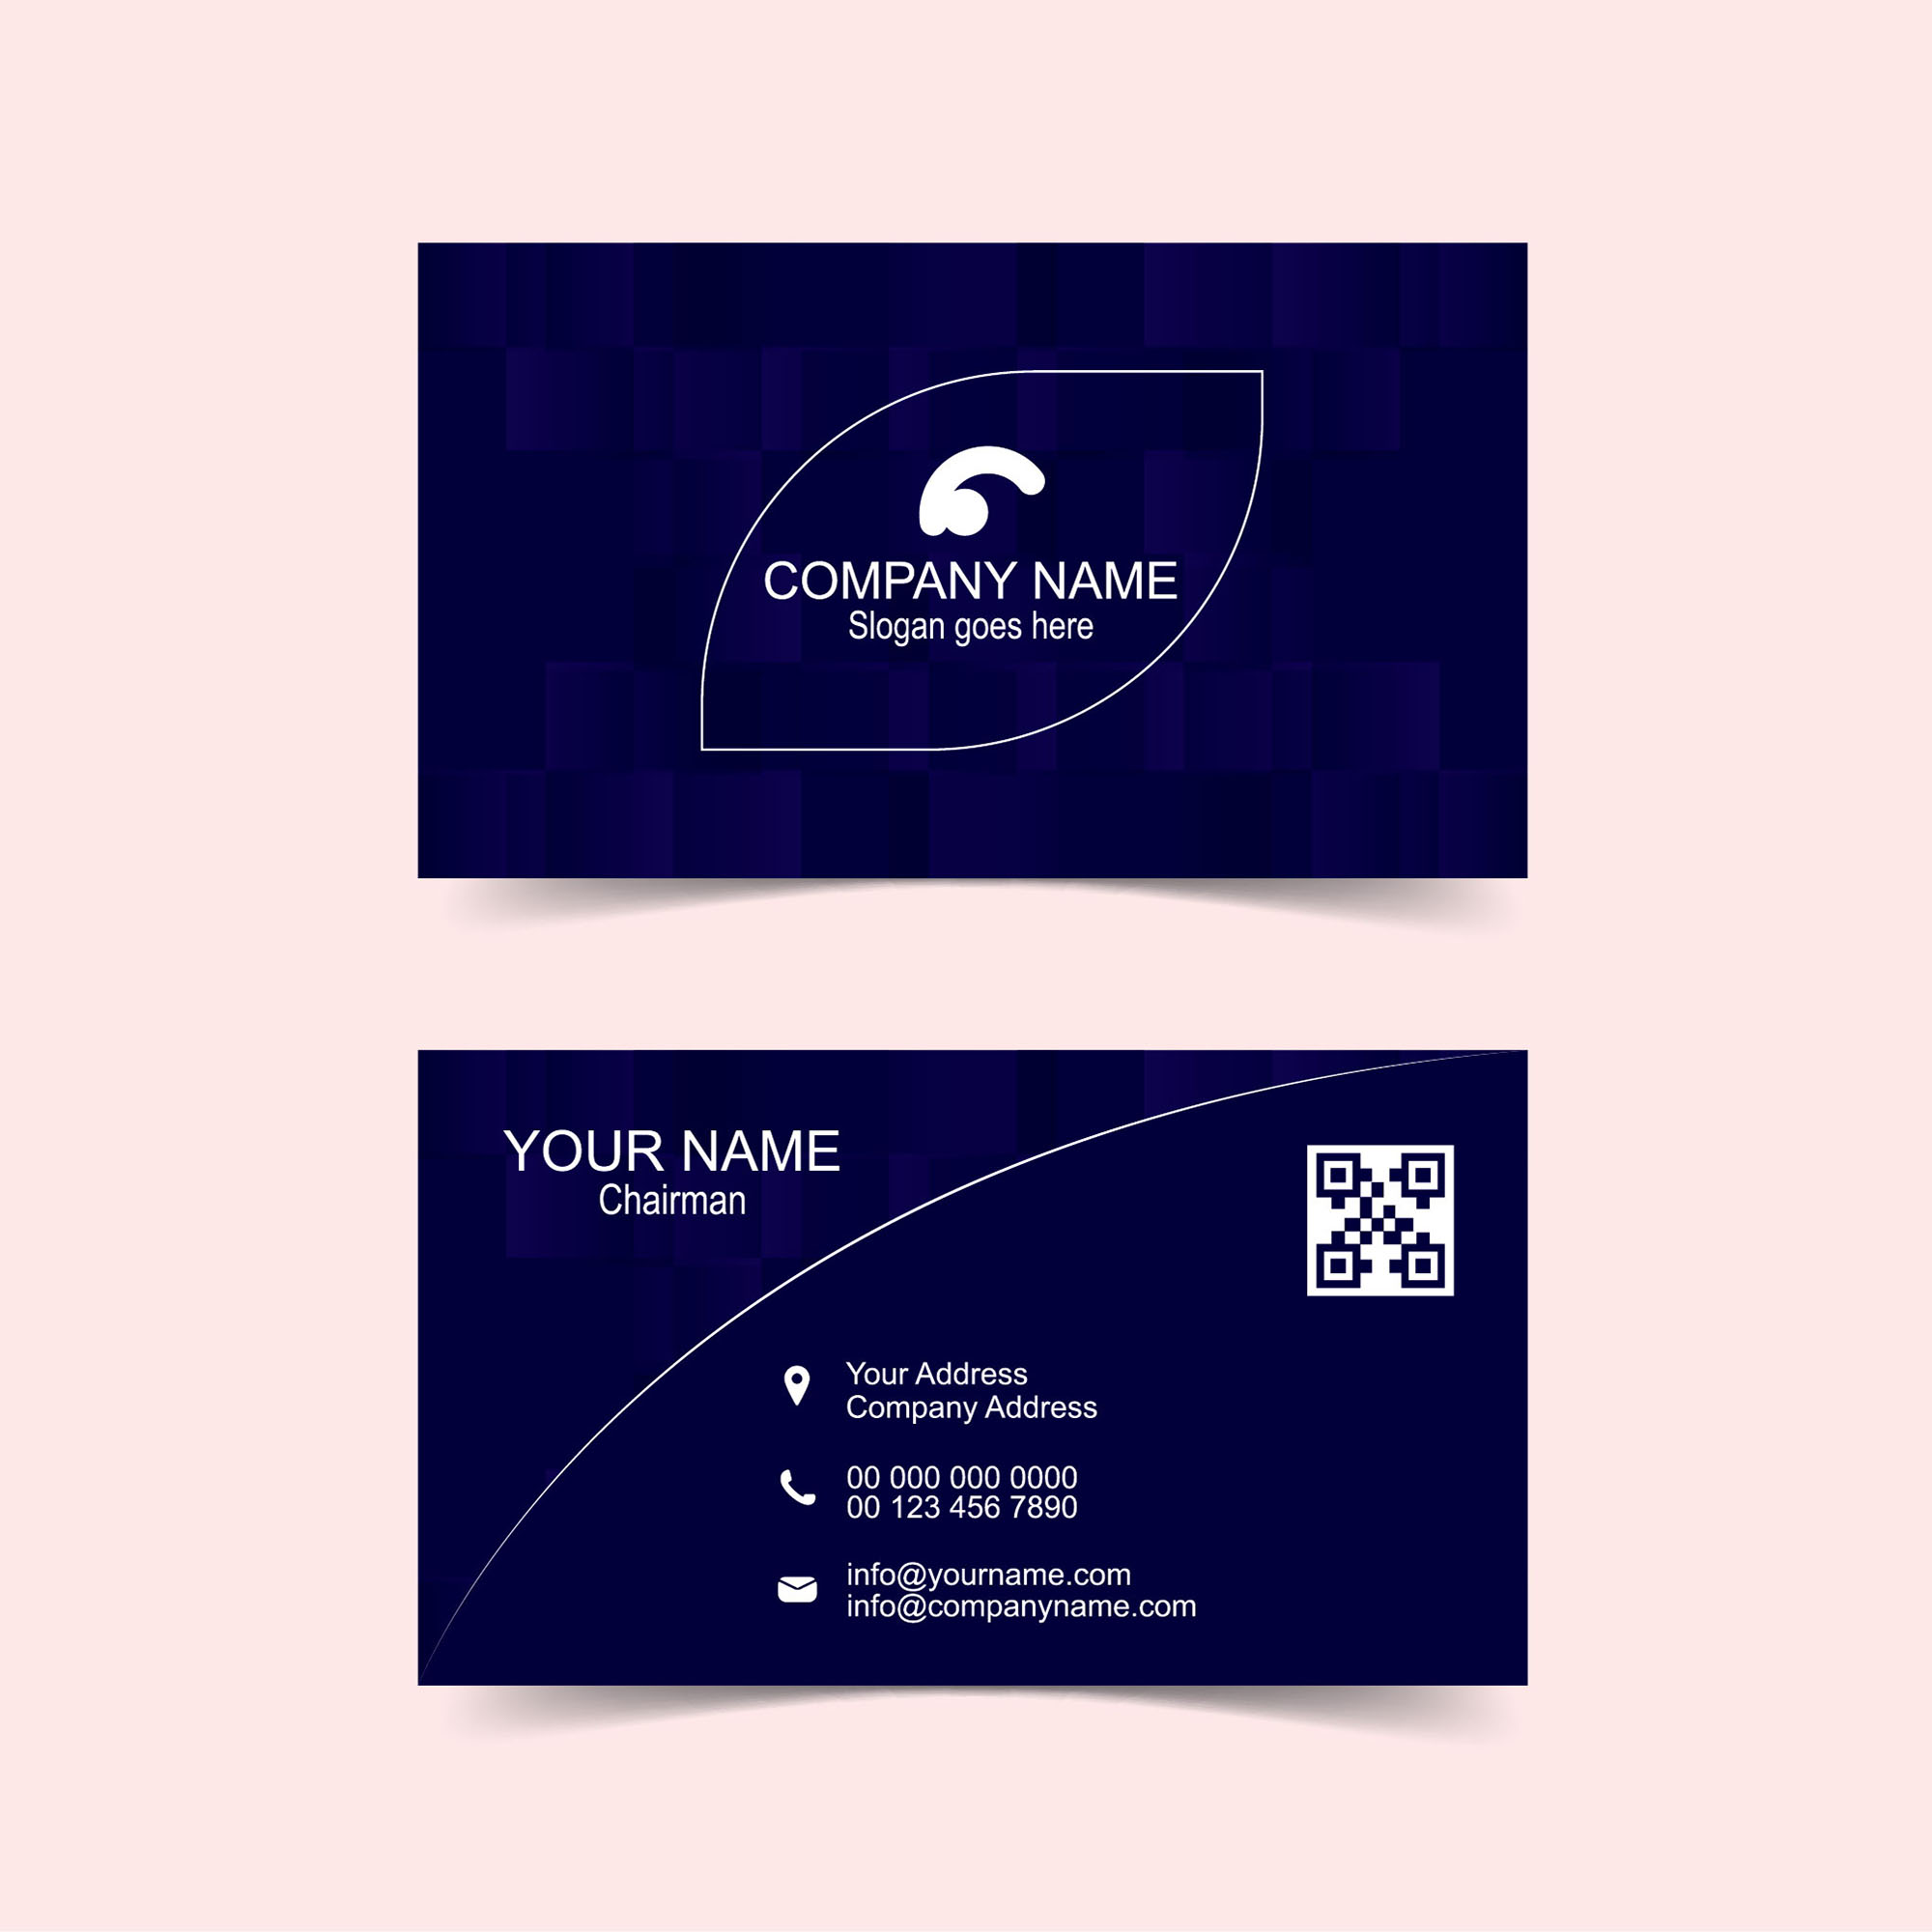 Abstract modern blue business card design wisxi business card business cards business card design business card template design templates cheaphphosting